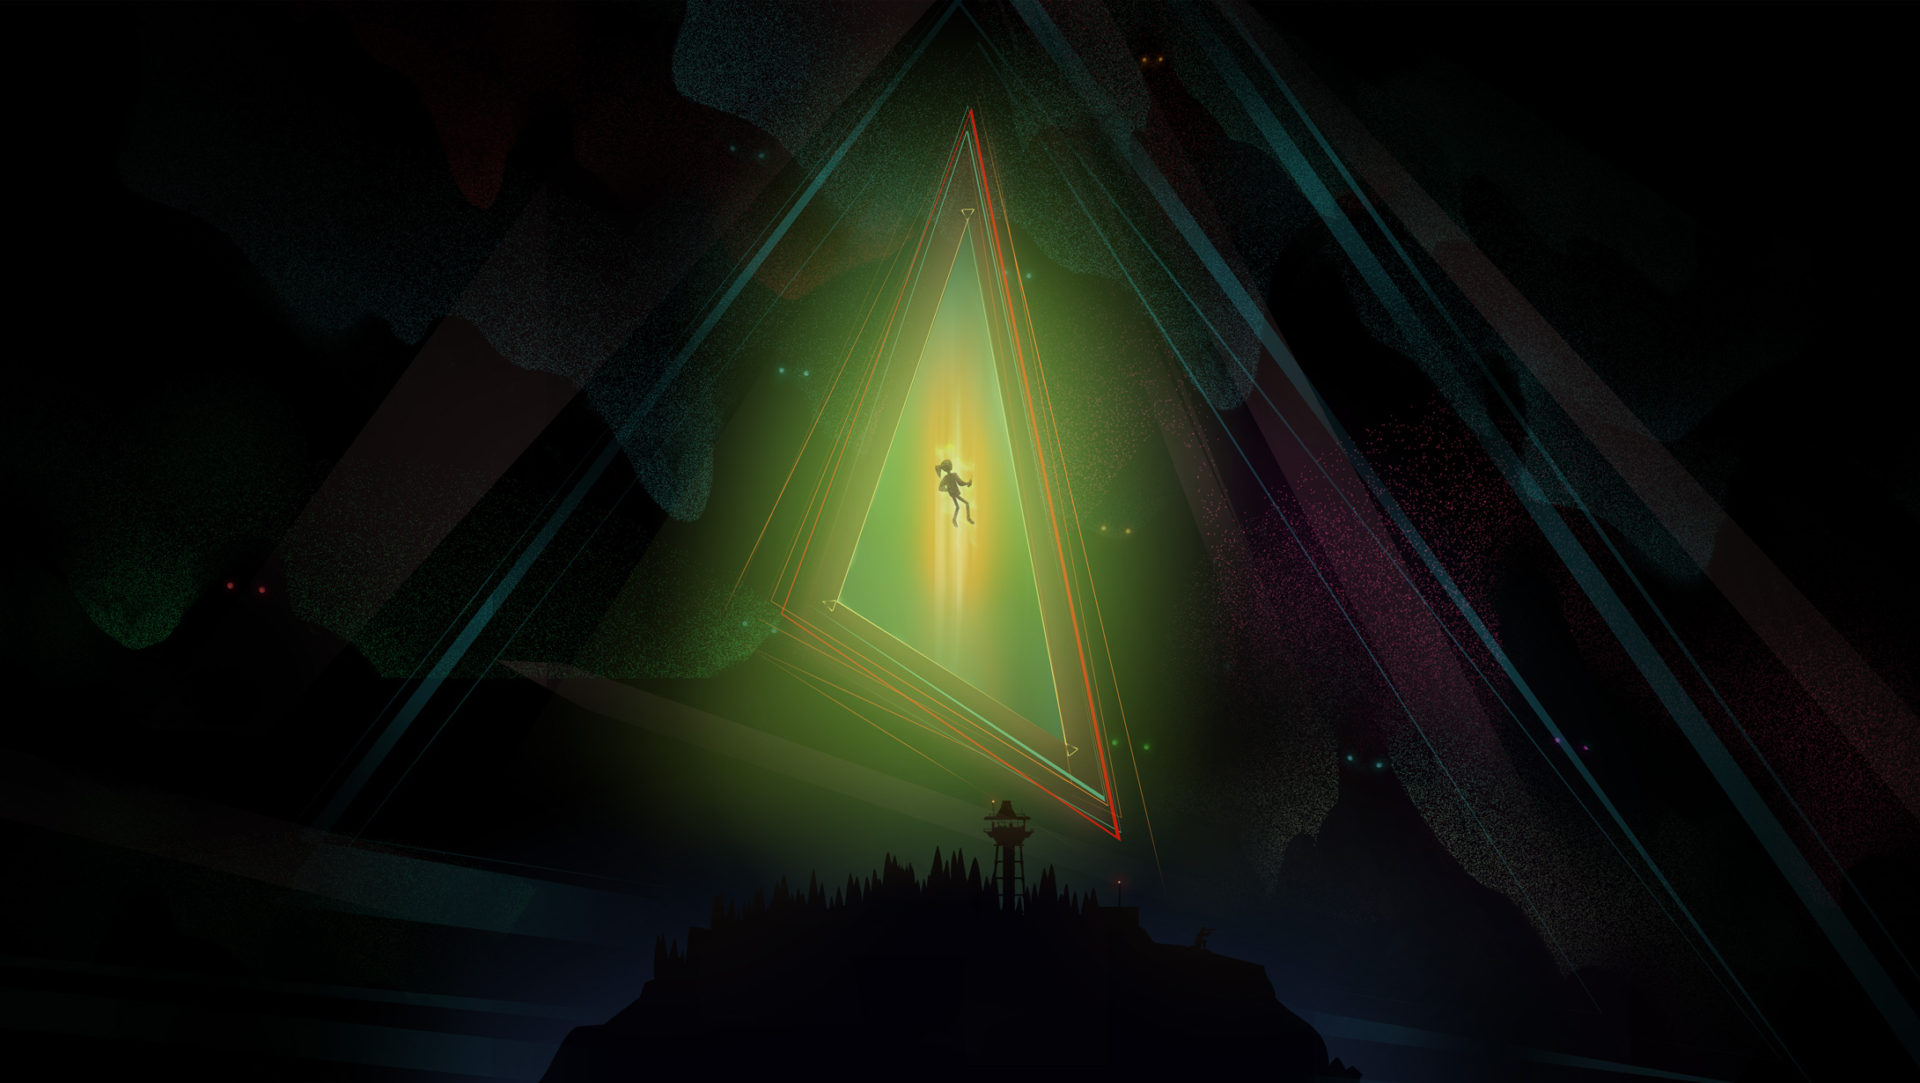 GOG's giving away Oxenfree for, uhh, free right now screenshot